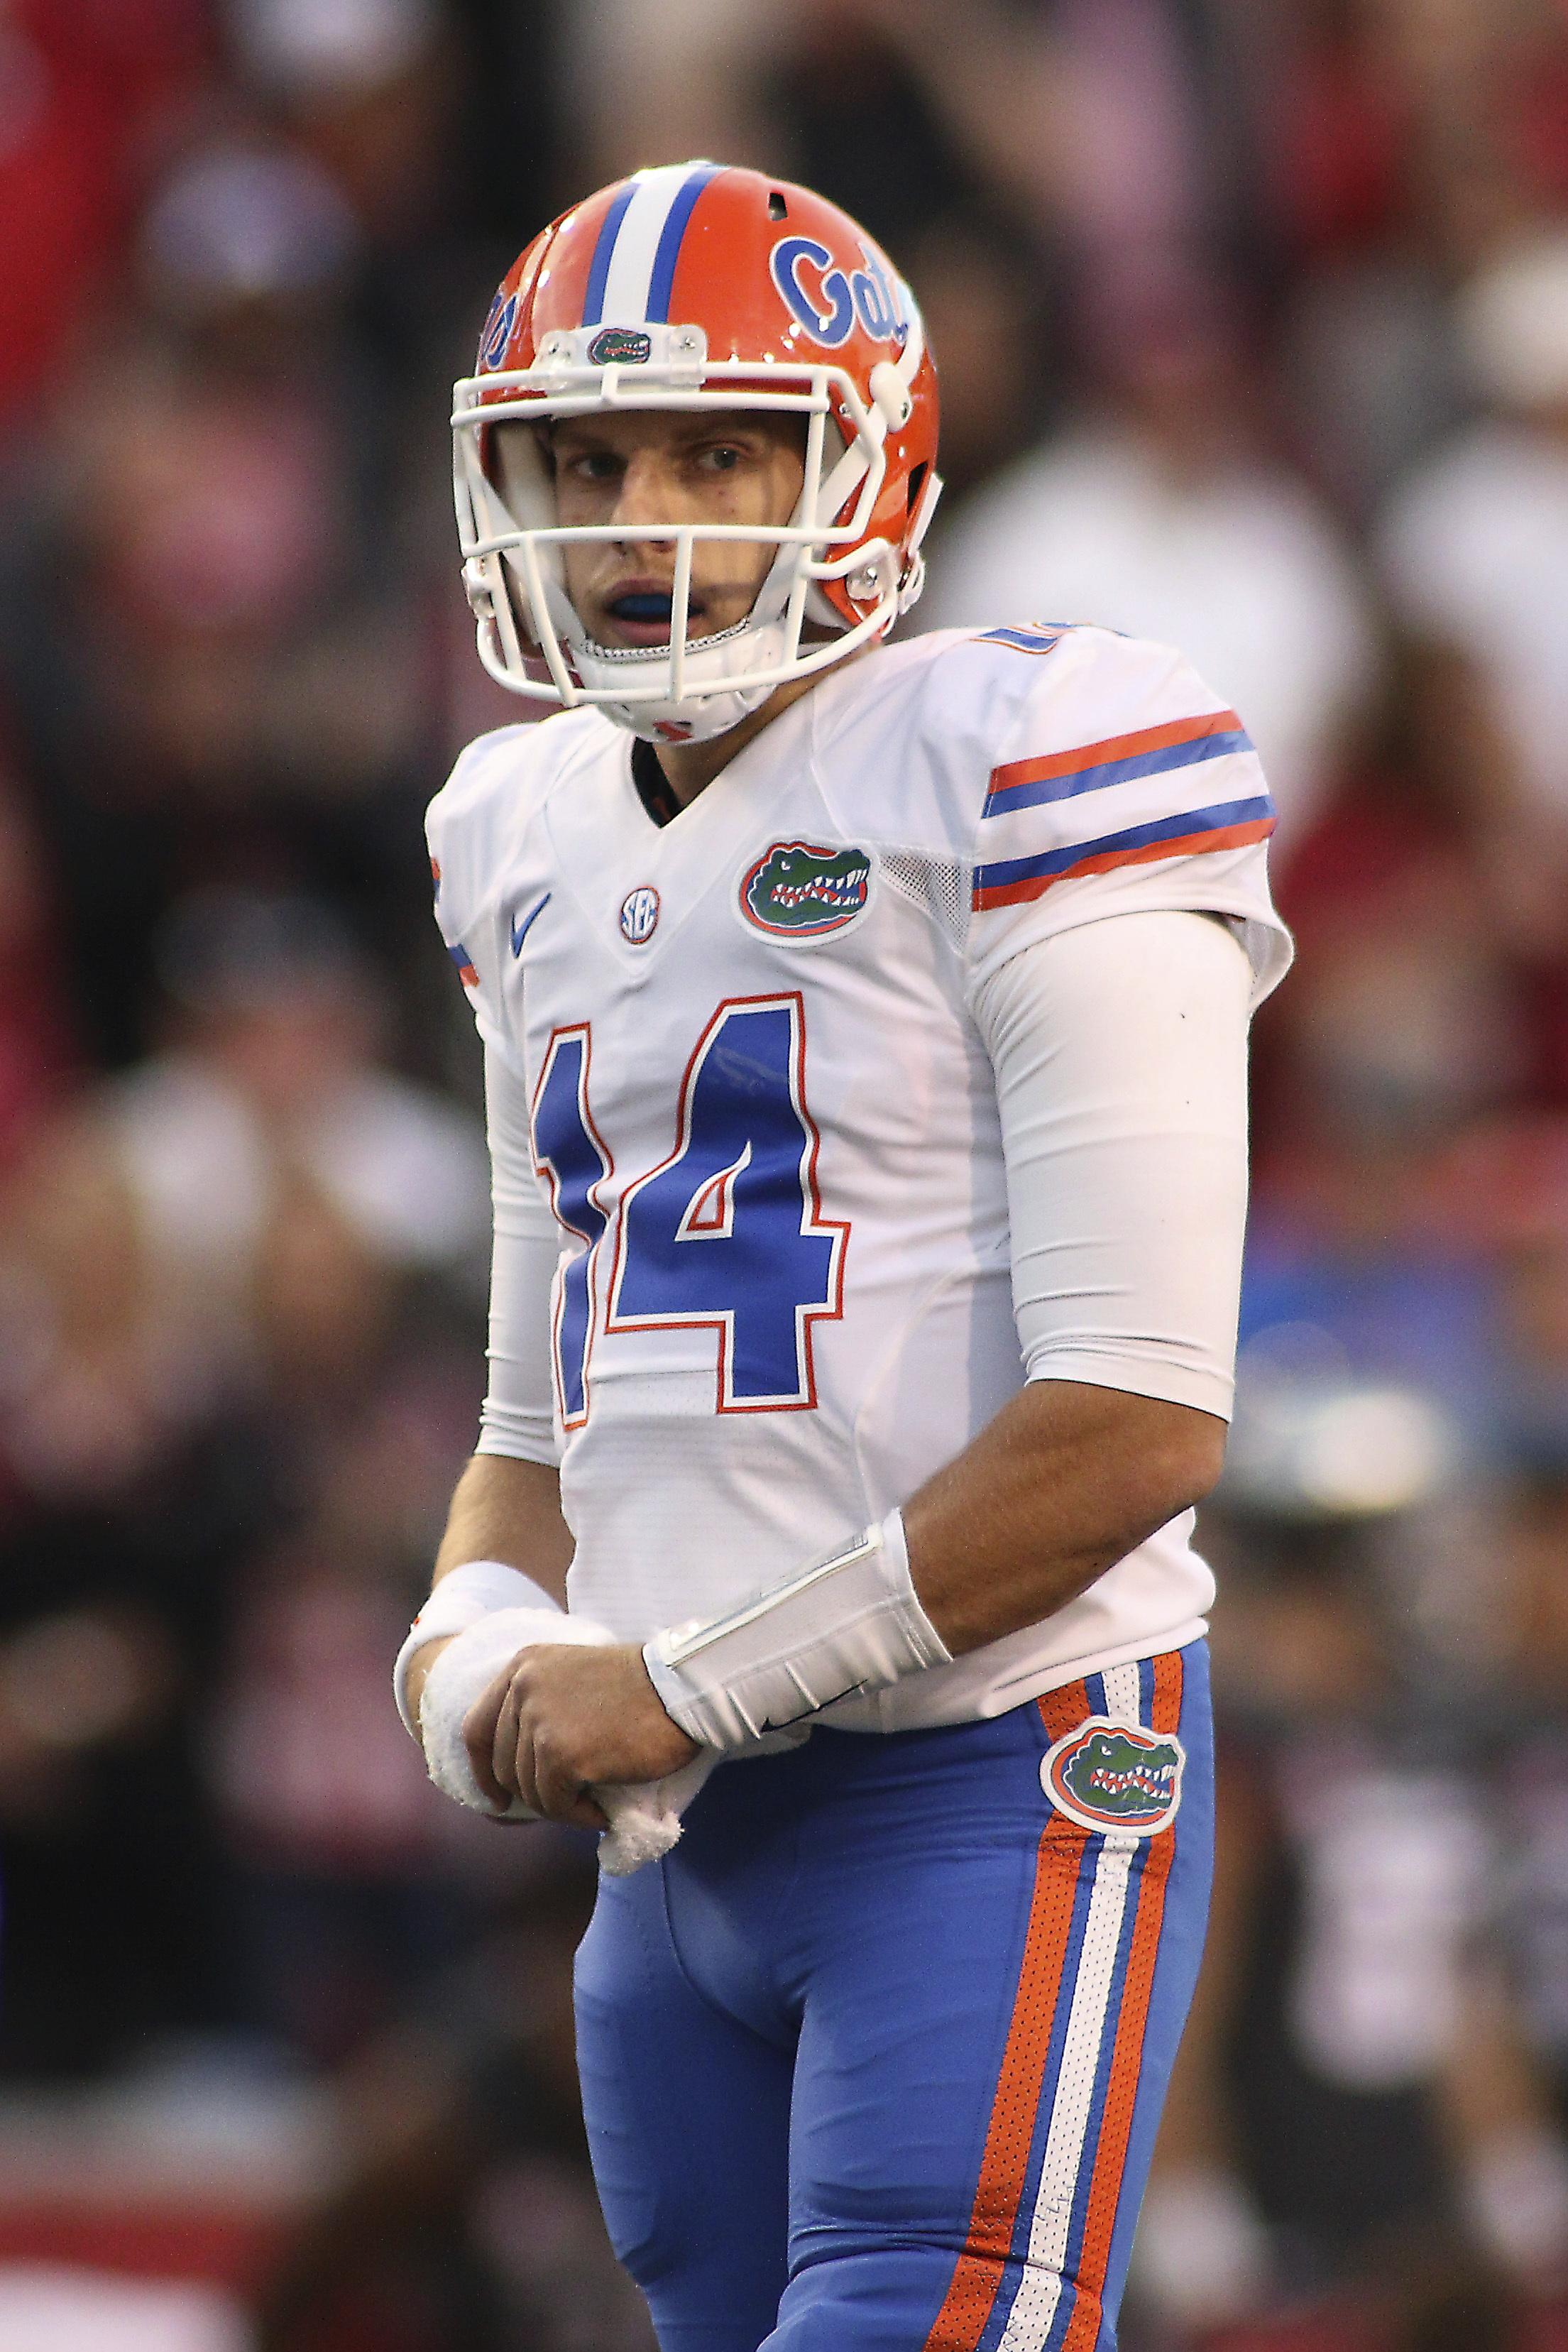 22 Florida Gators Could Be Without Quarterback Luke Del Rio For The Rest